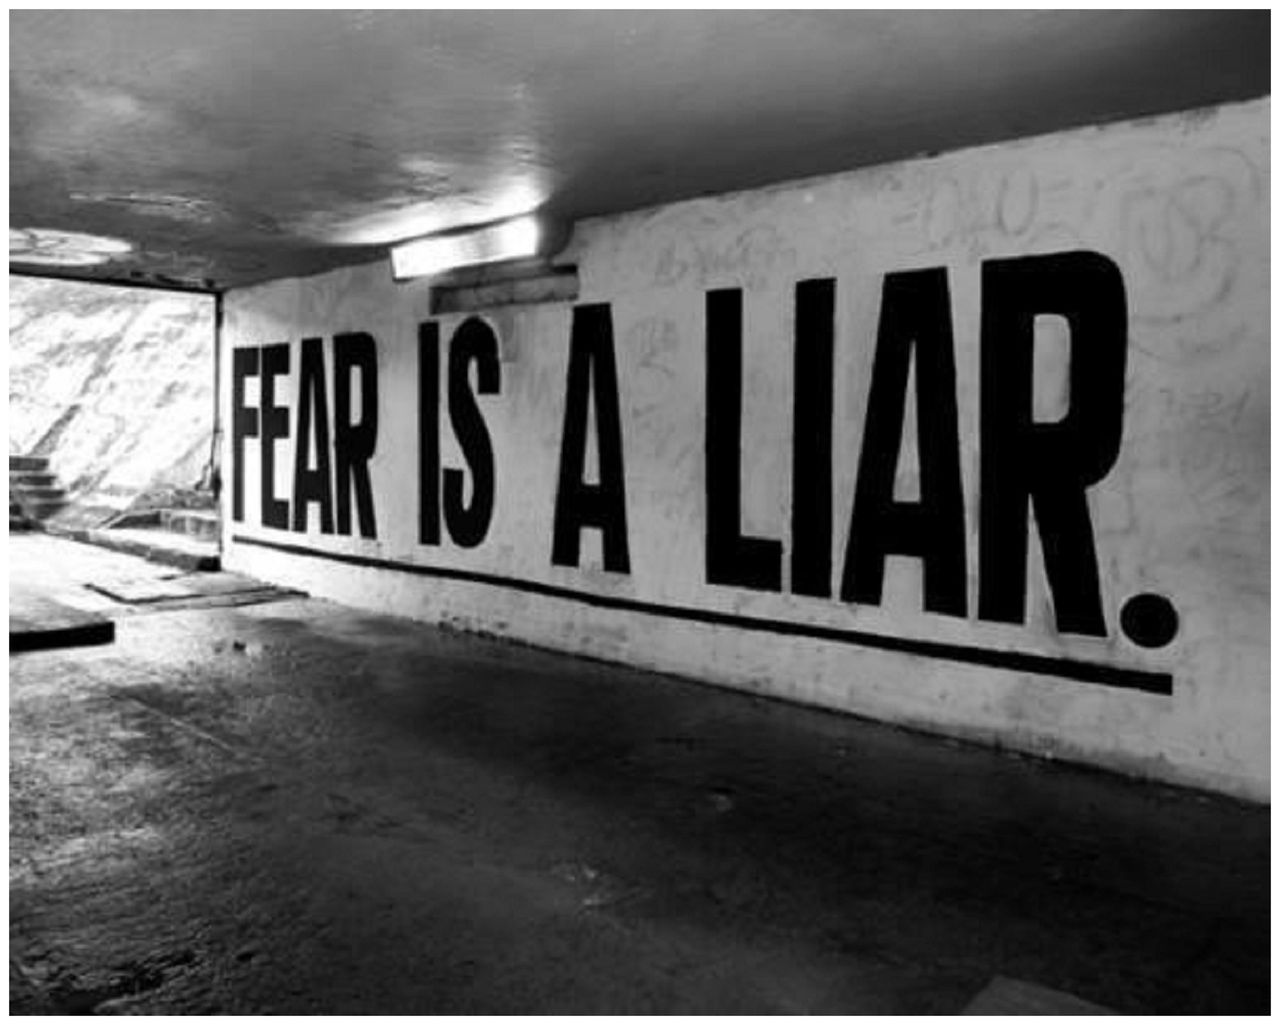 Don't get driven by fear